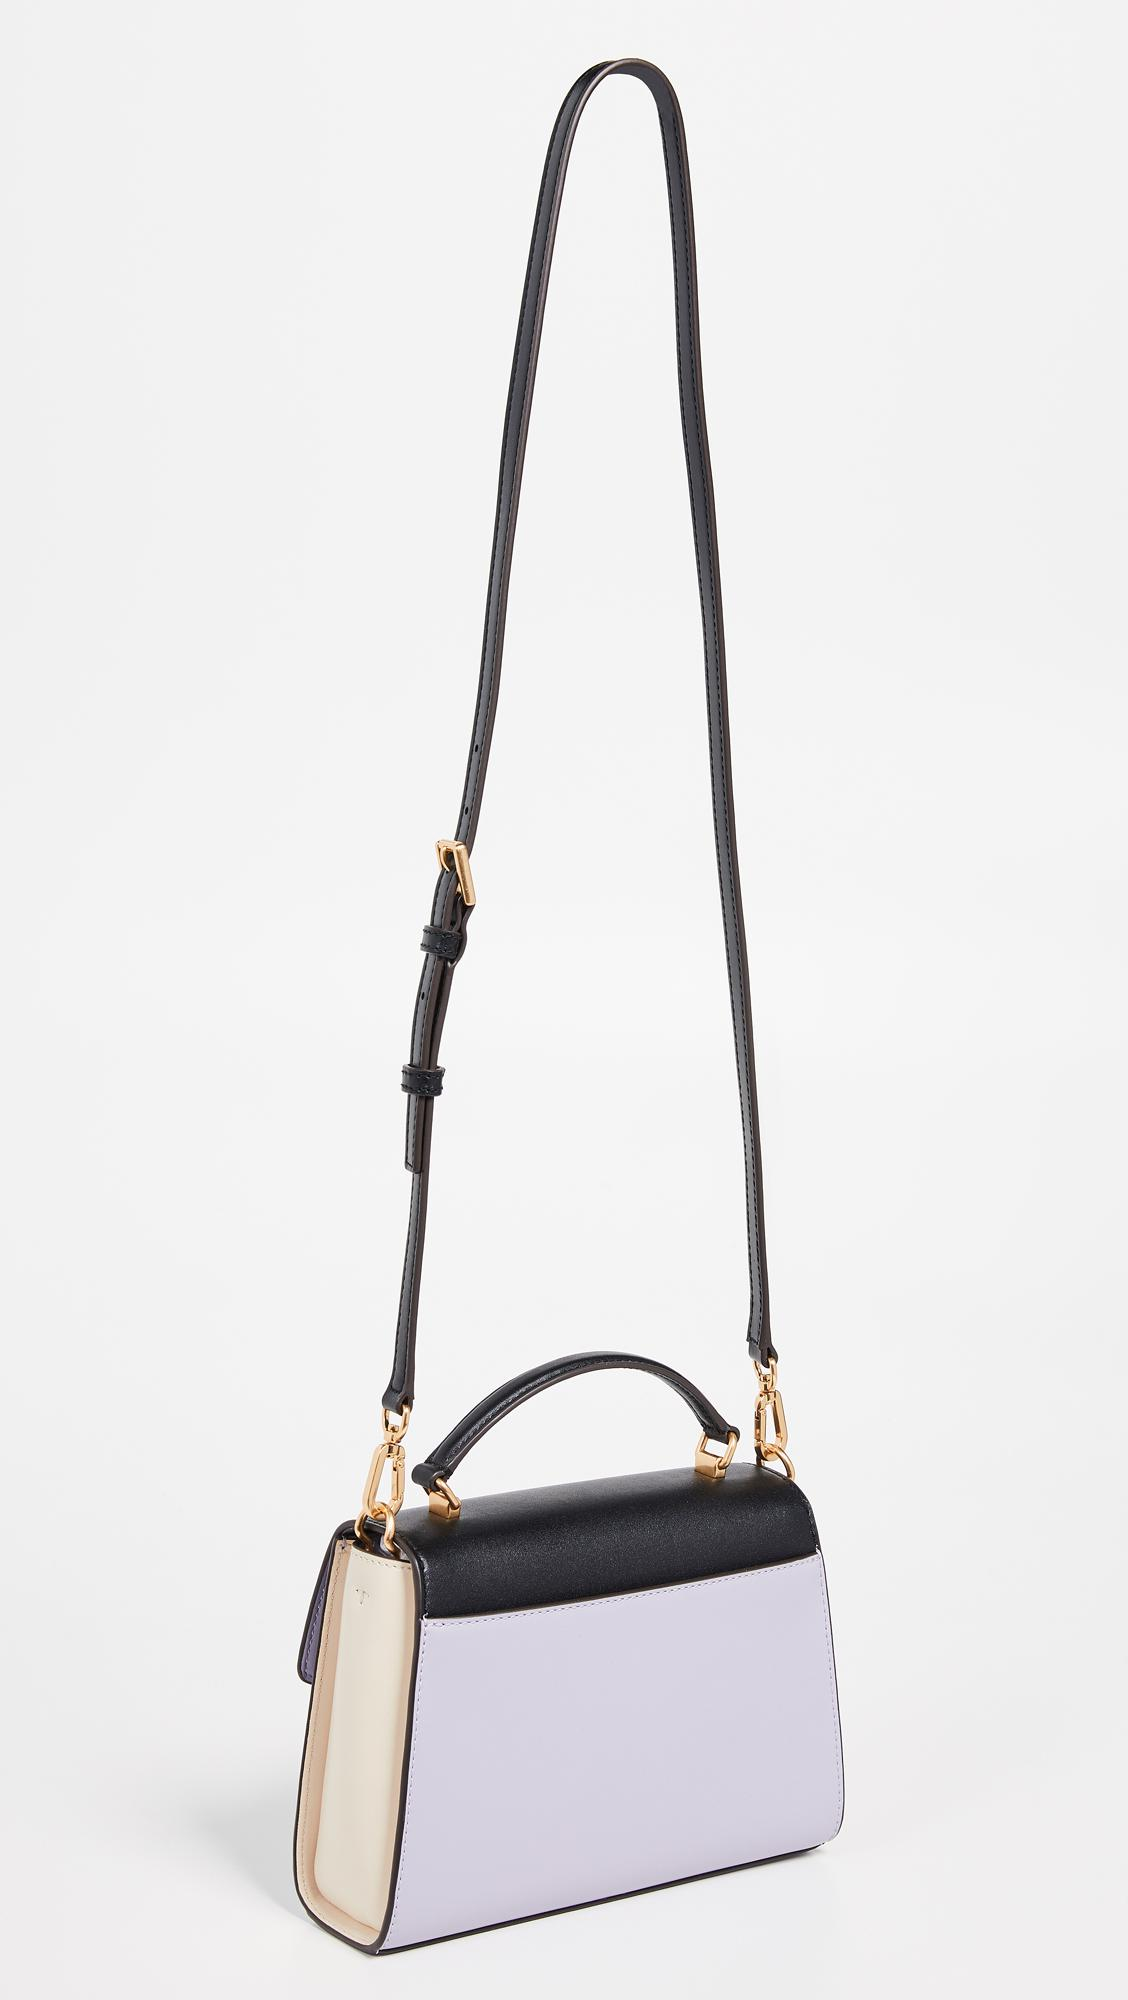 c22dc8ae87a4 Tory Burch - Black Juliette Colorblock Small Top Handle Satchel - Lyst.  View fullscreen